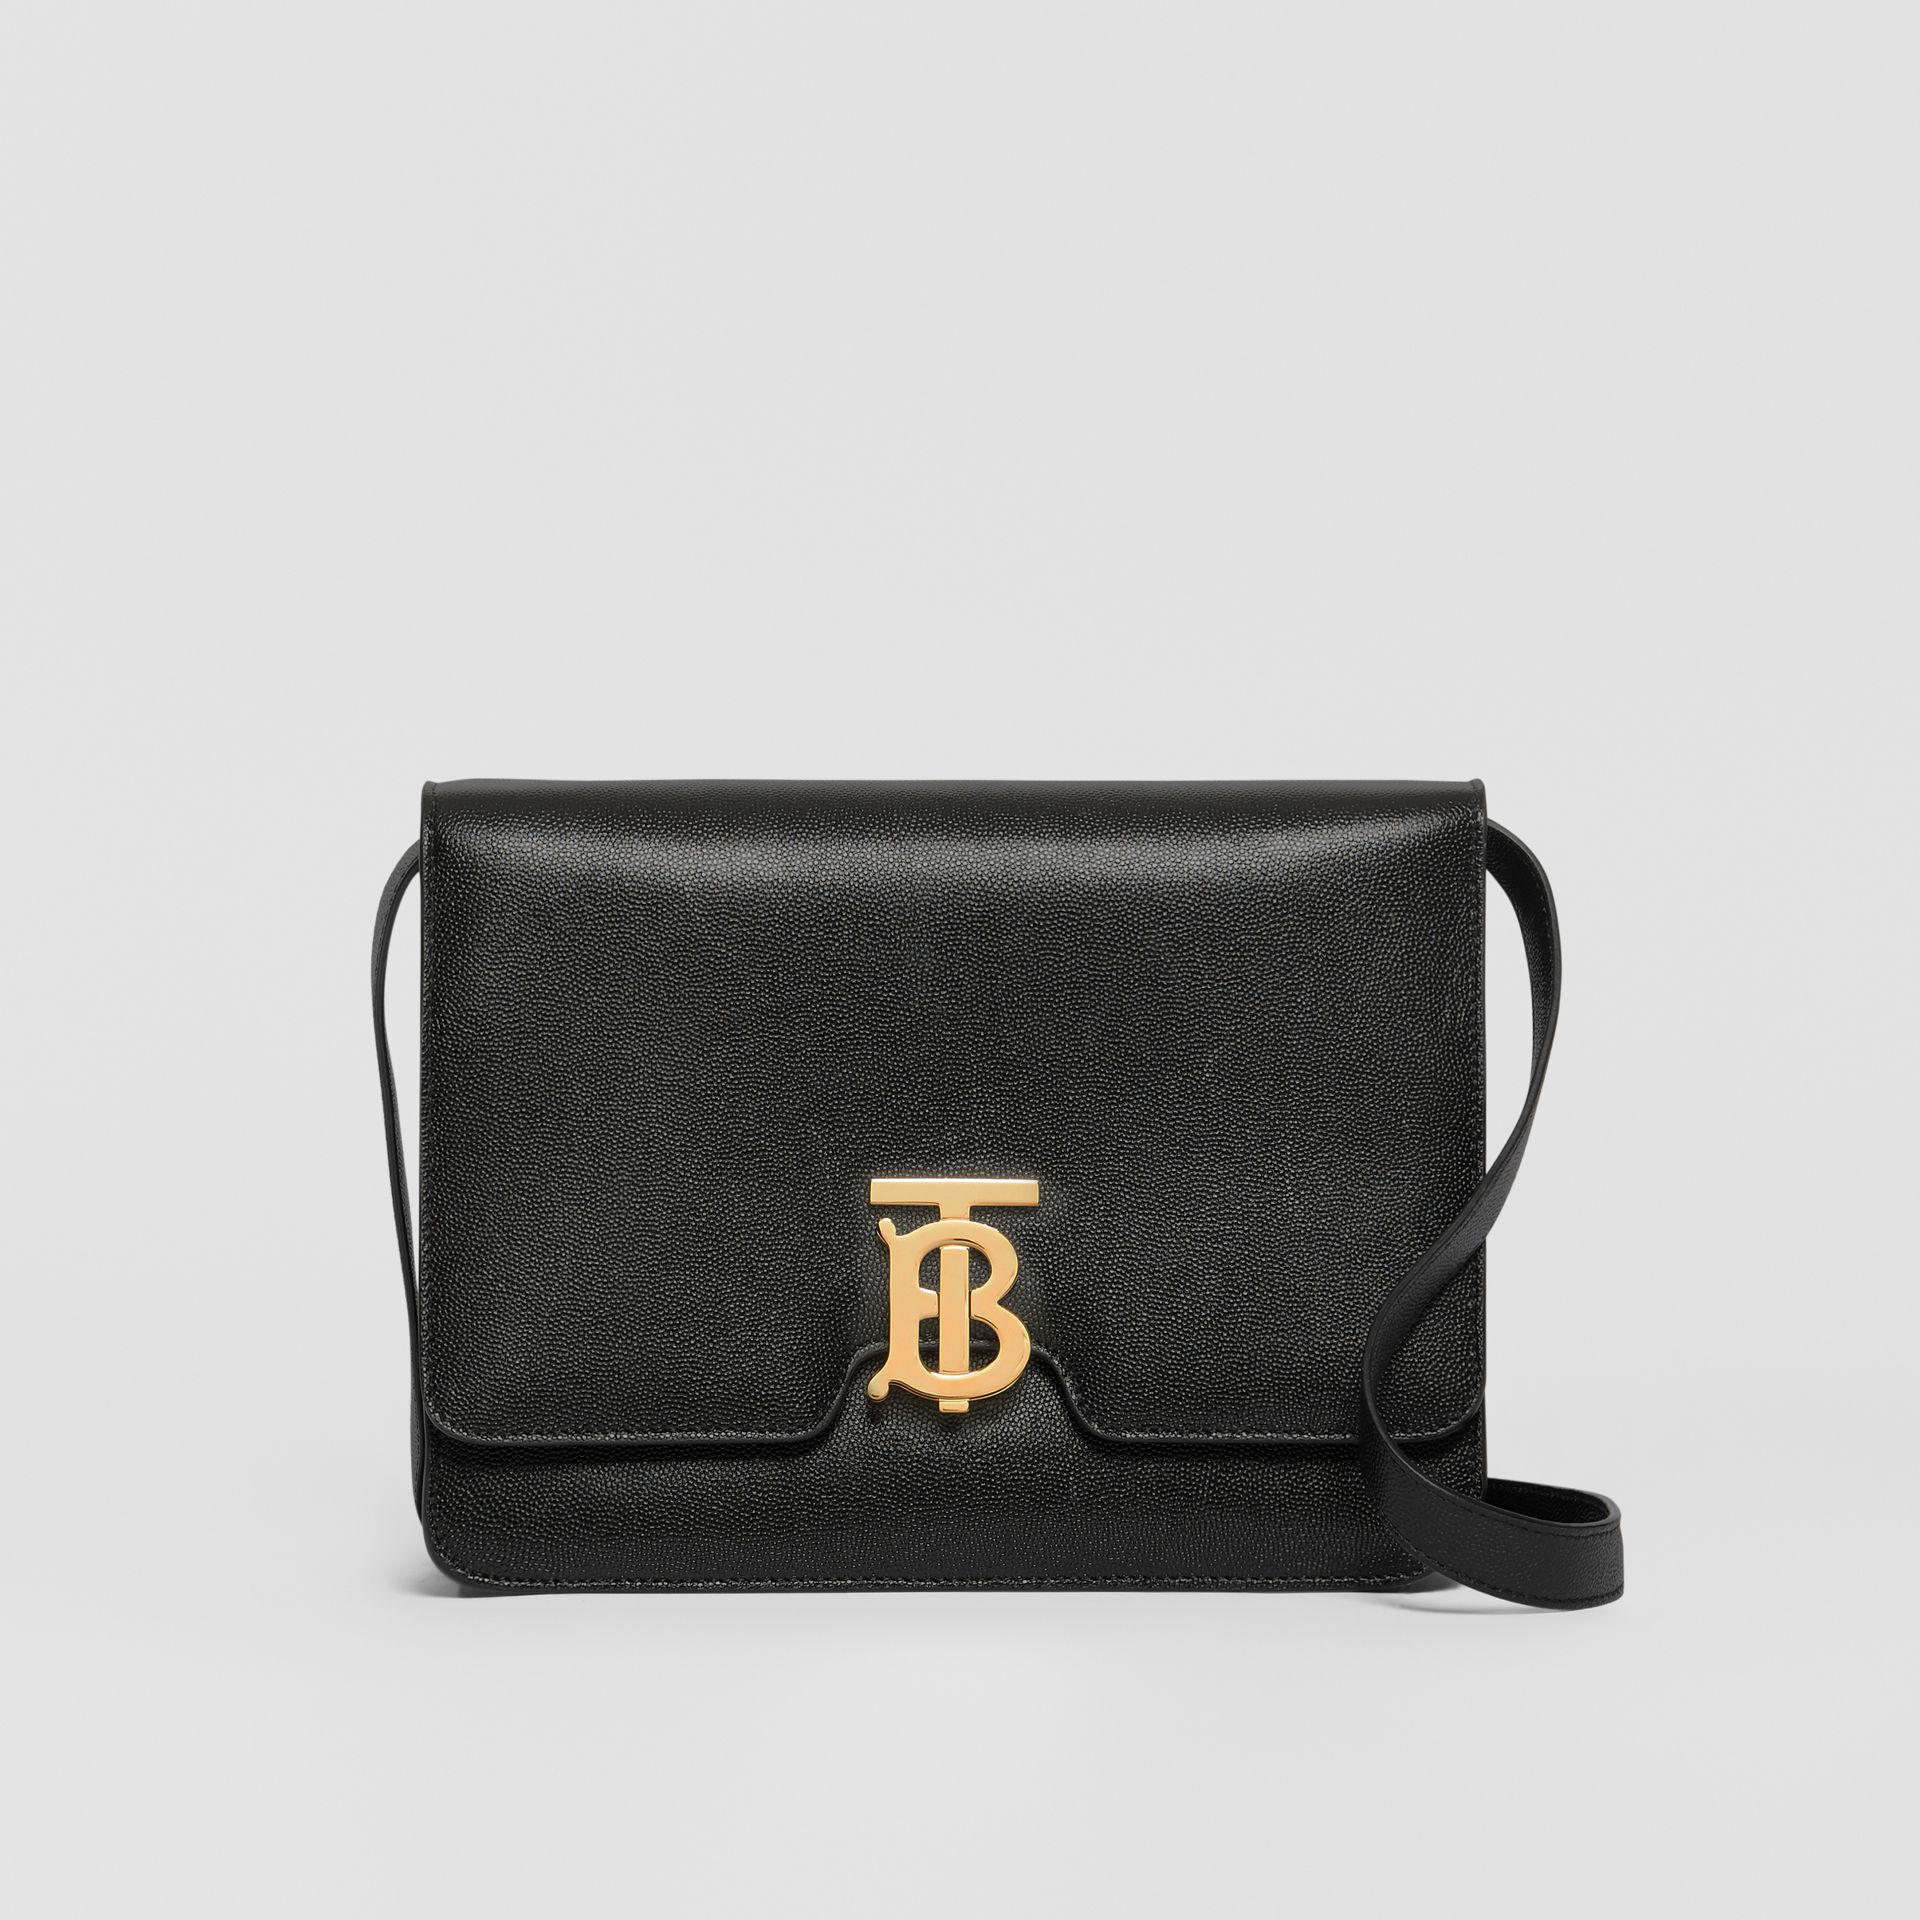 Medium Grainy Leather TB Bag in Black - Women | Burberry United Kingdom - gallery image 0